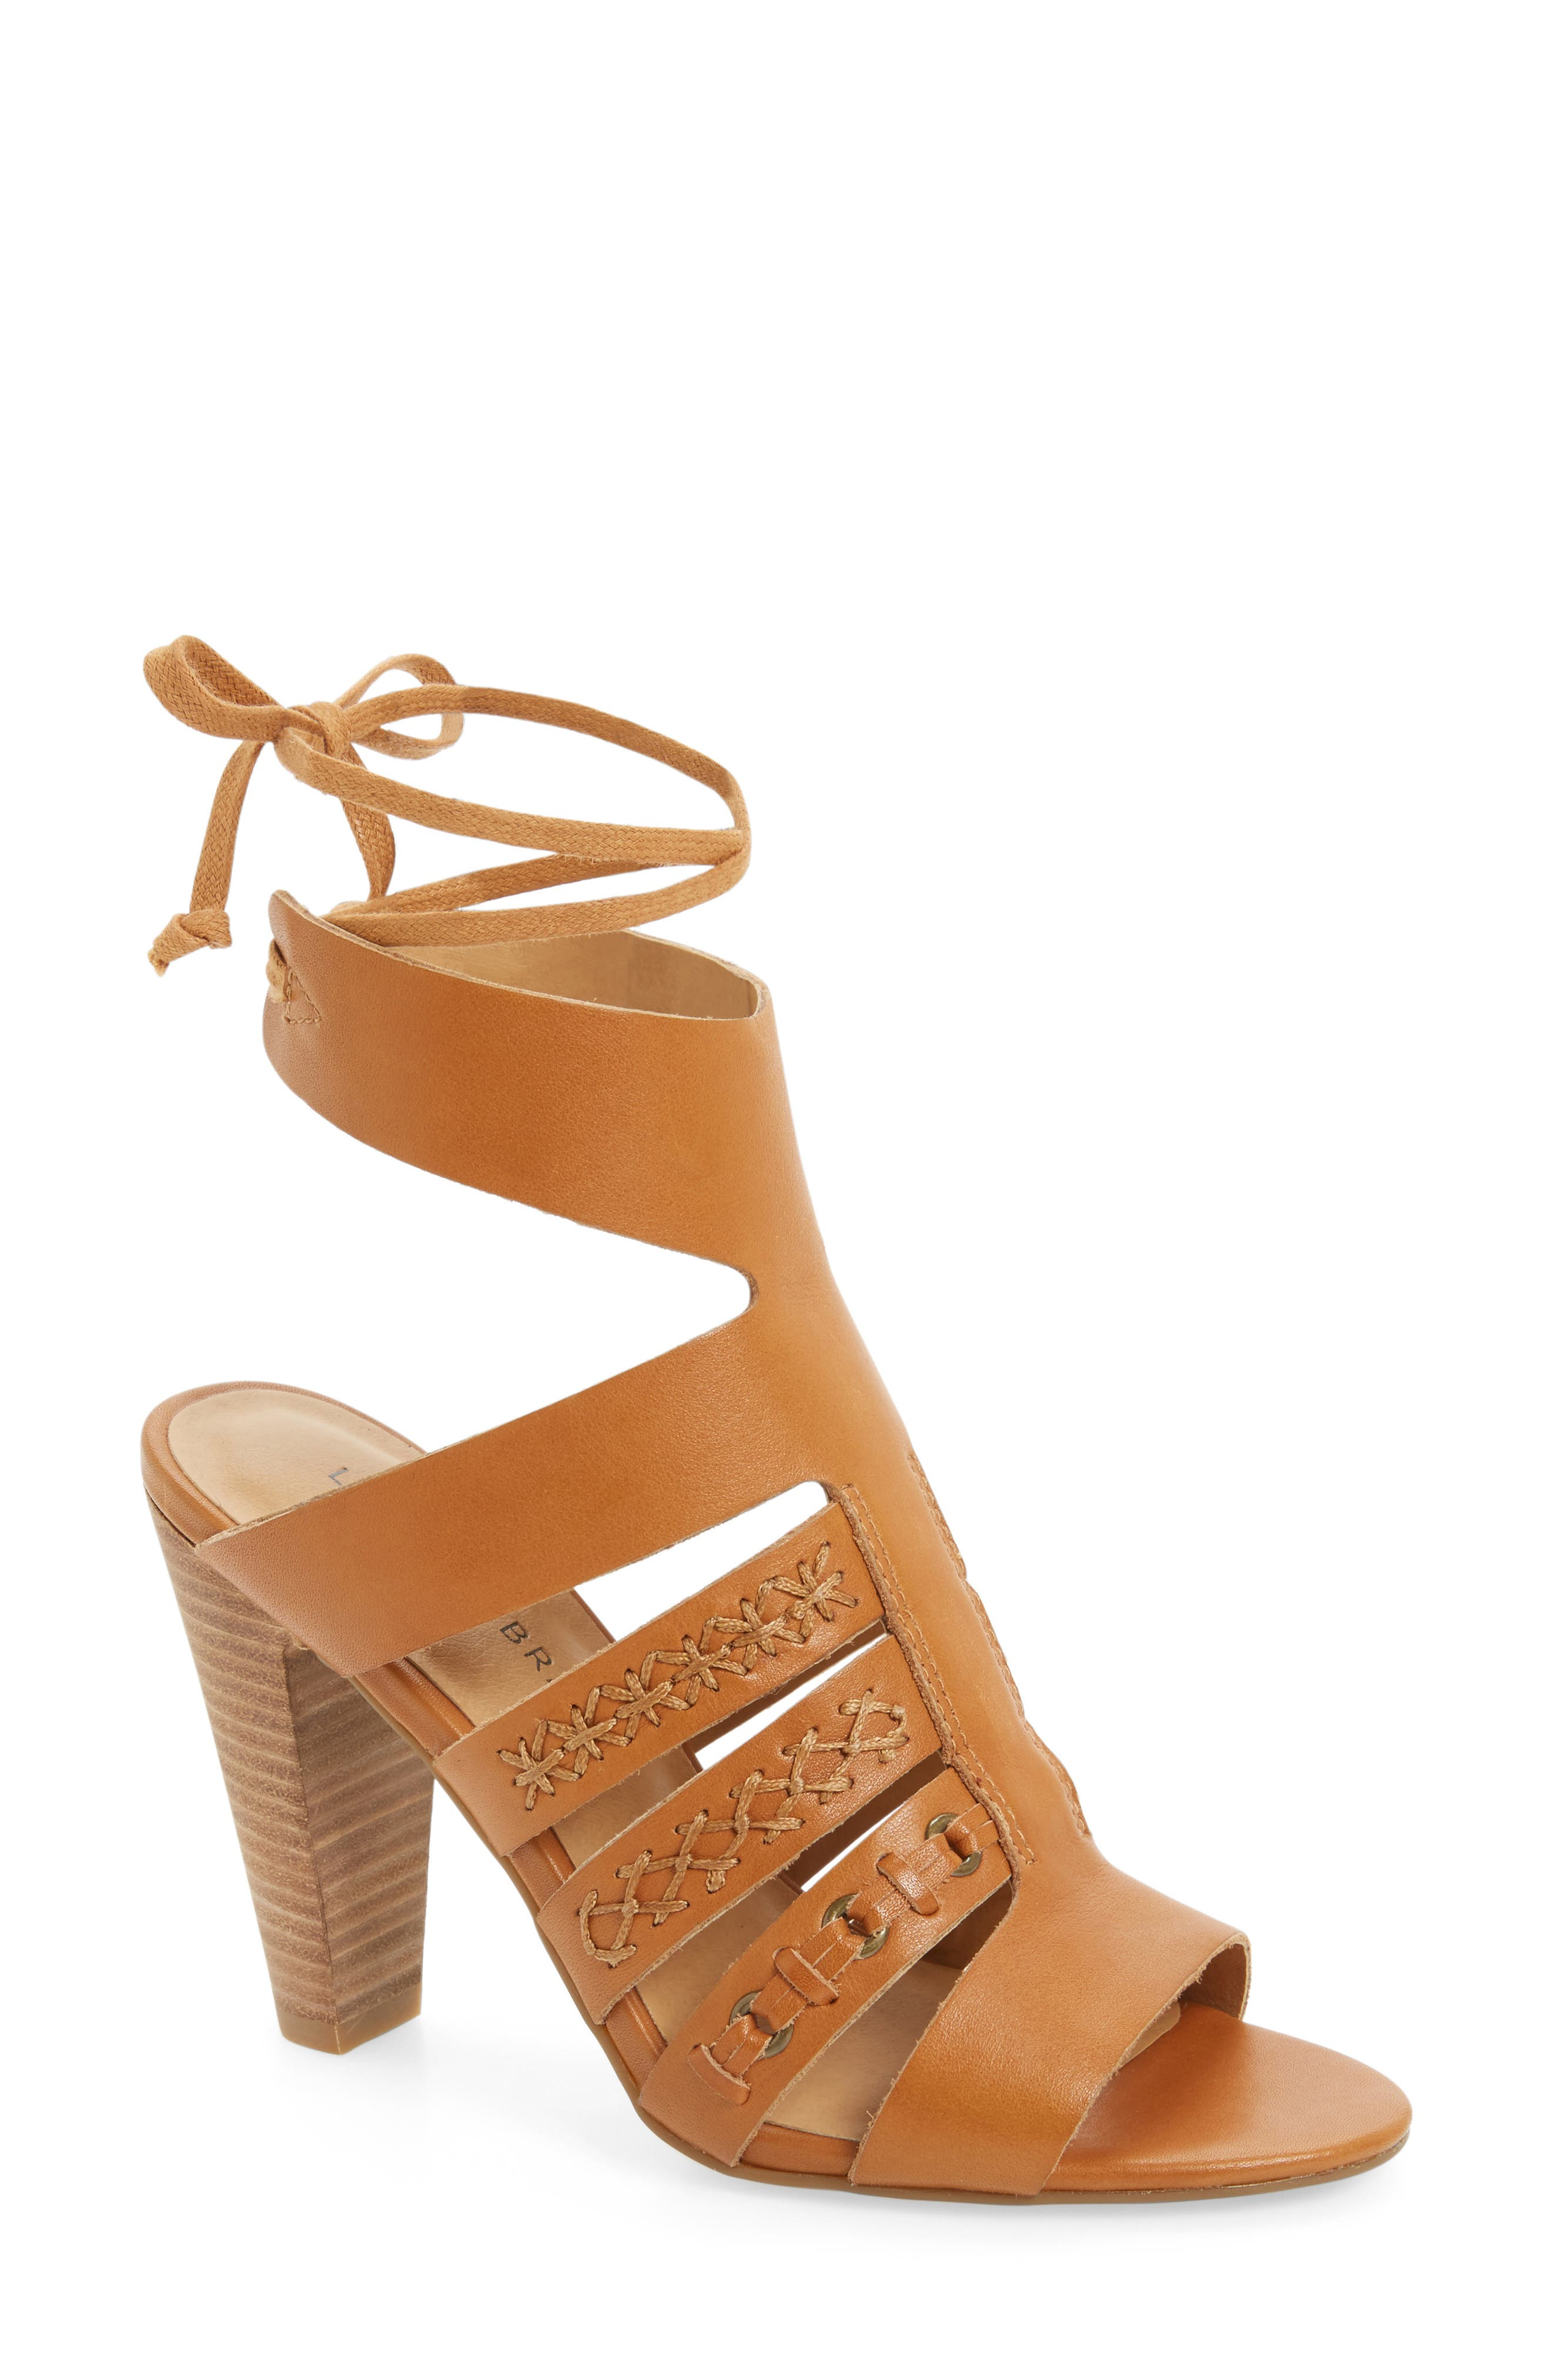 Alternate Image 1 Selected - Lucky Brand Radfas Lace-Up Sandal (Women)